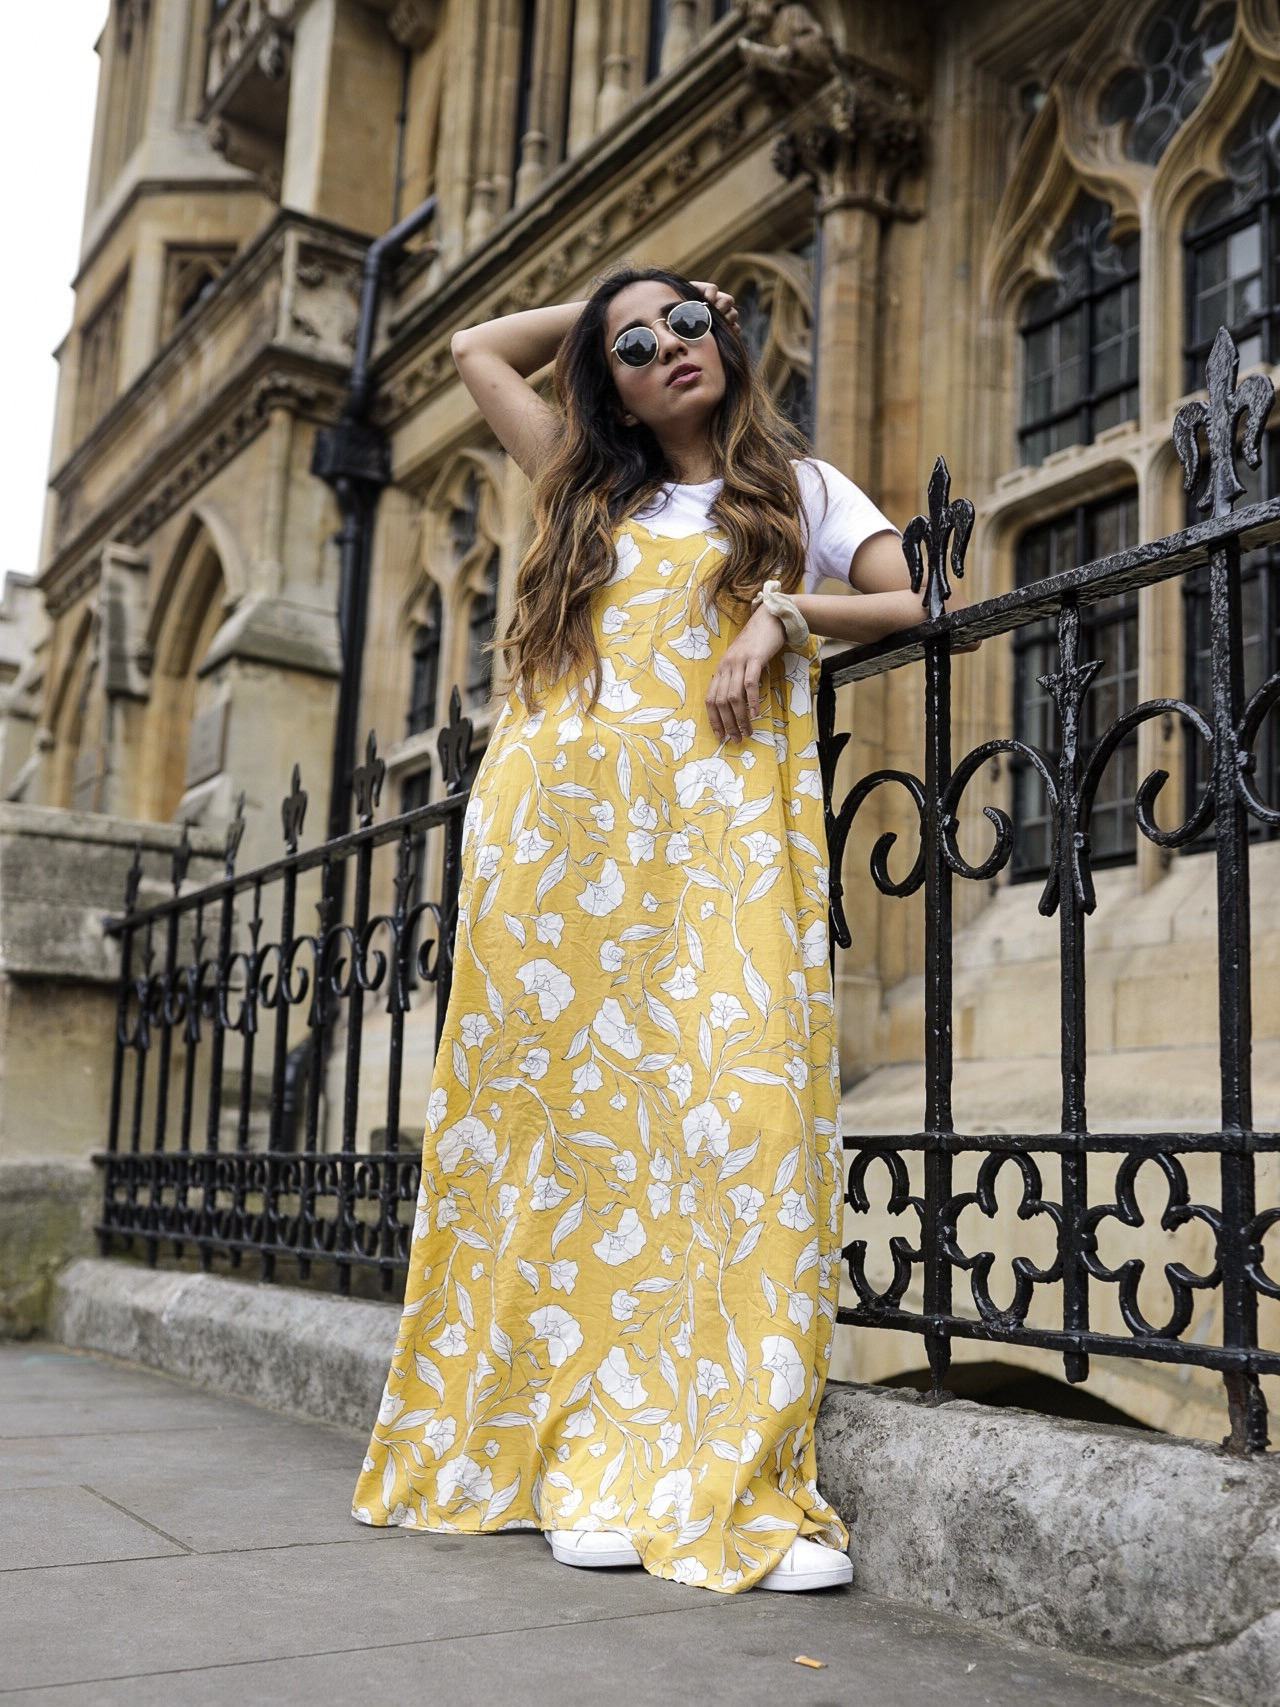 Summer Dress 2019 Roundups Part 1 Faiza Inam Sincerelyhumble maxi dresses Thin-strap maxi dress maison simons1